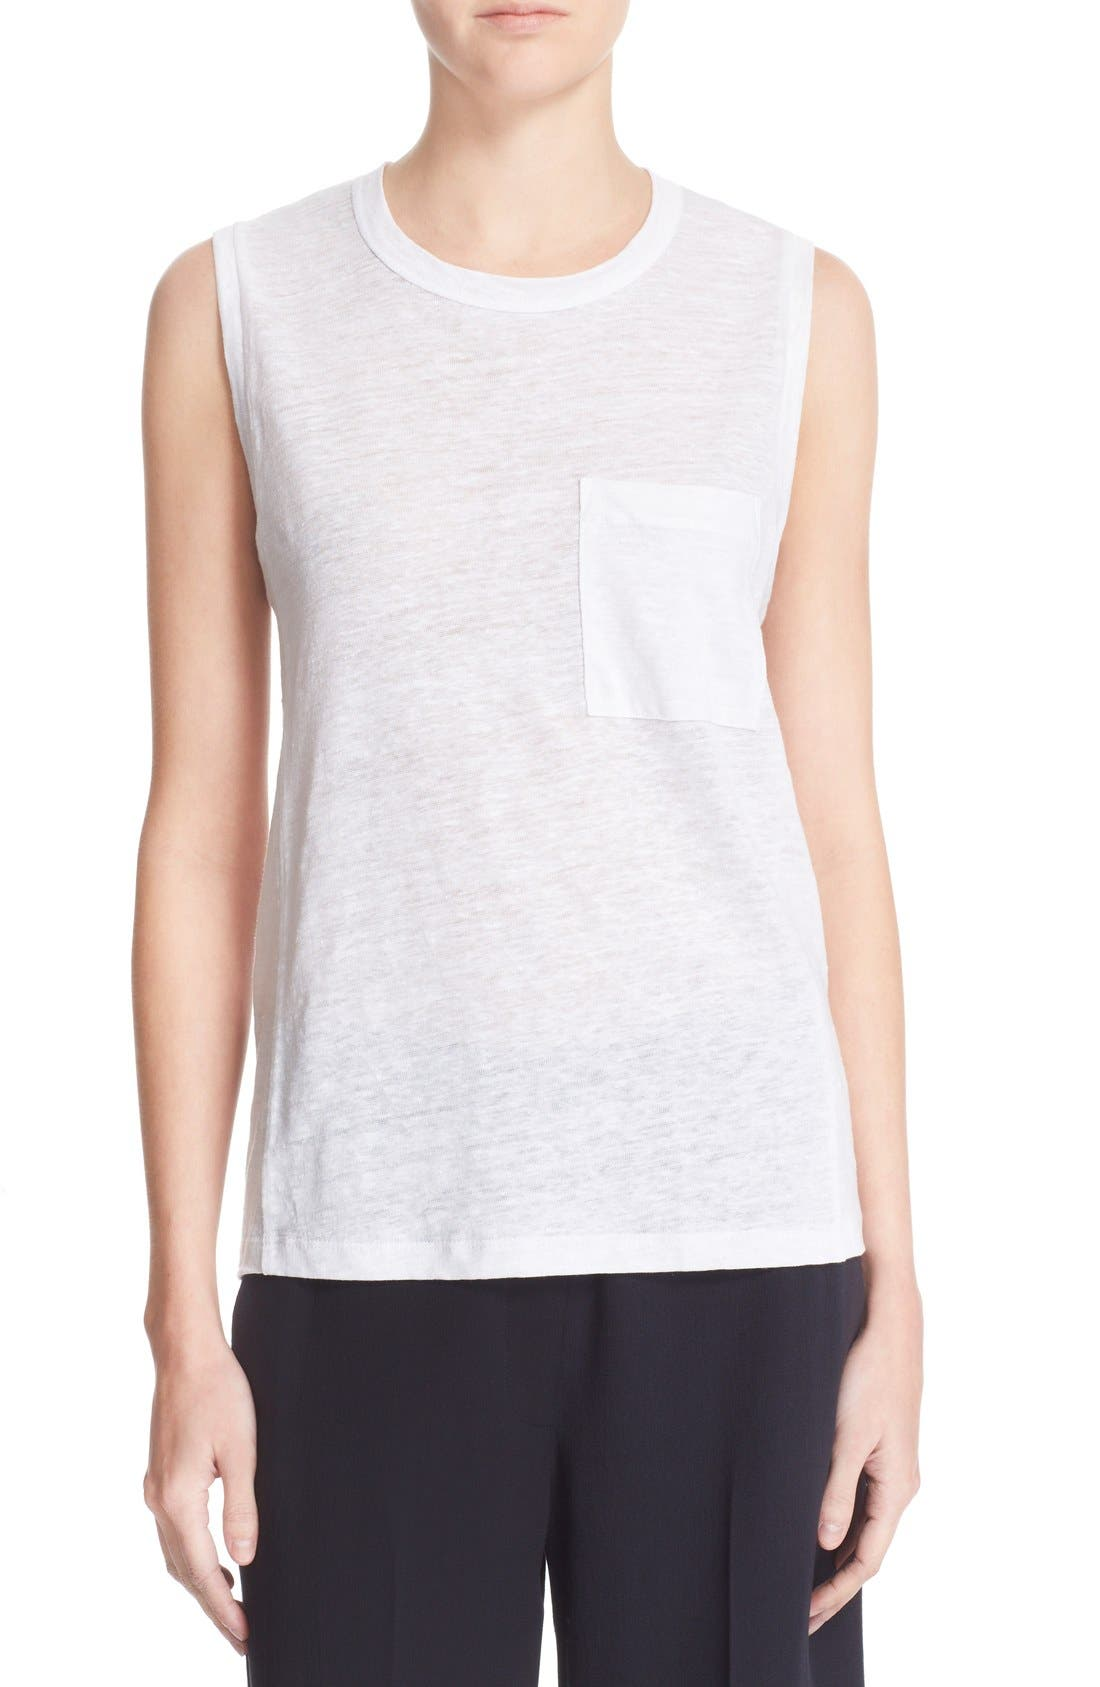 Sean Linen Muscle Tee,                             Main thumbnail 1, color,                             White